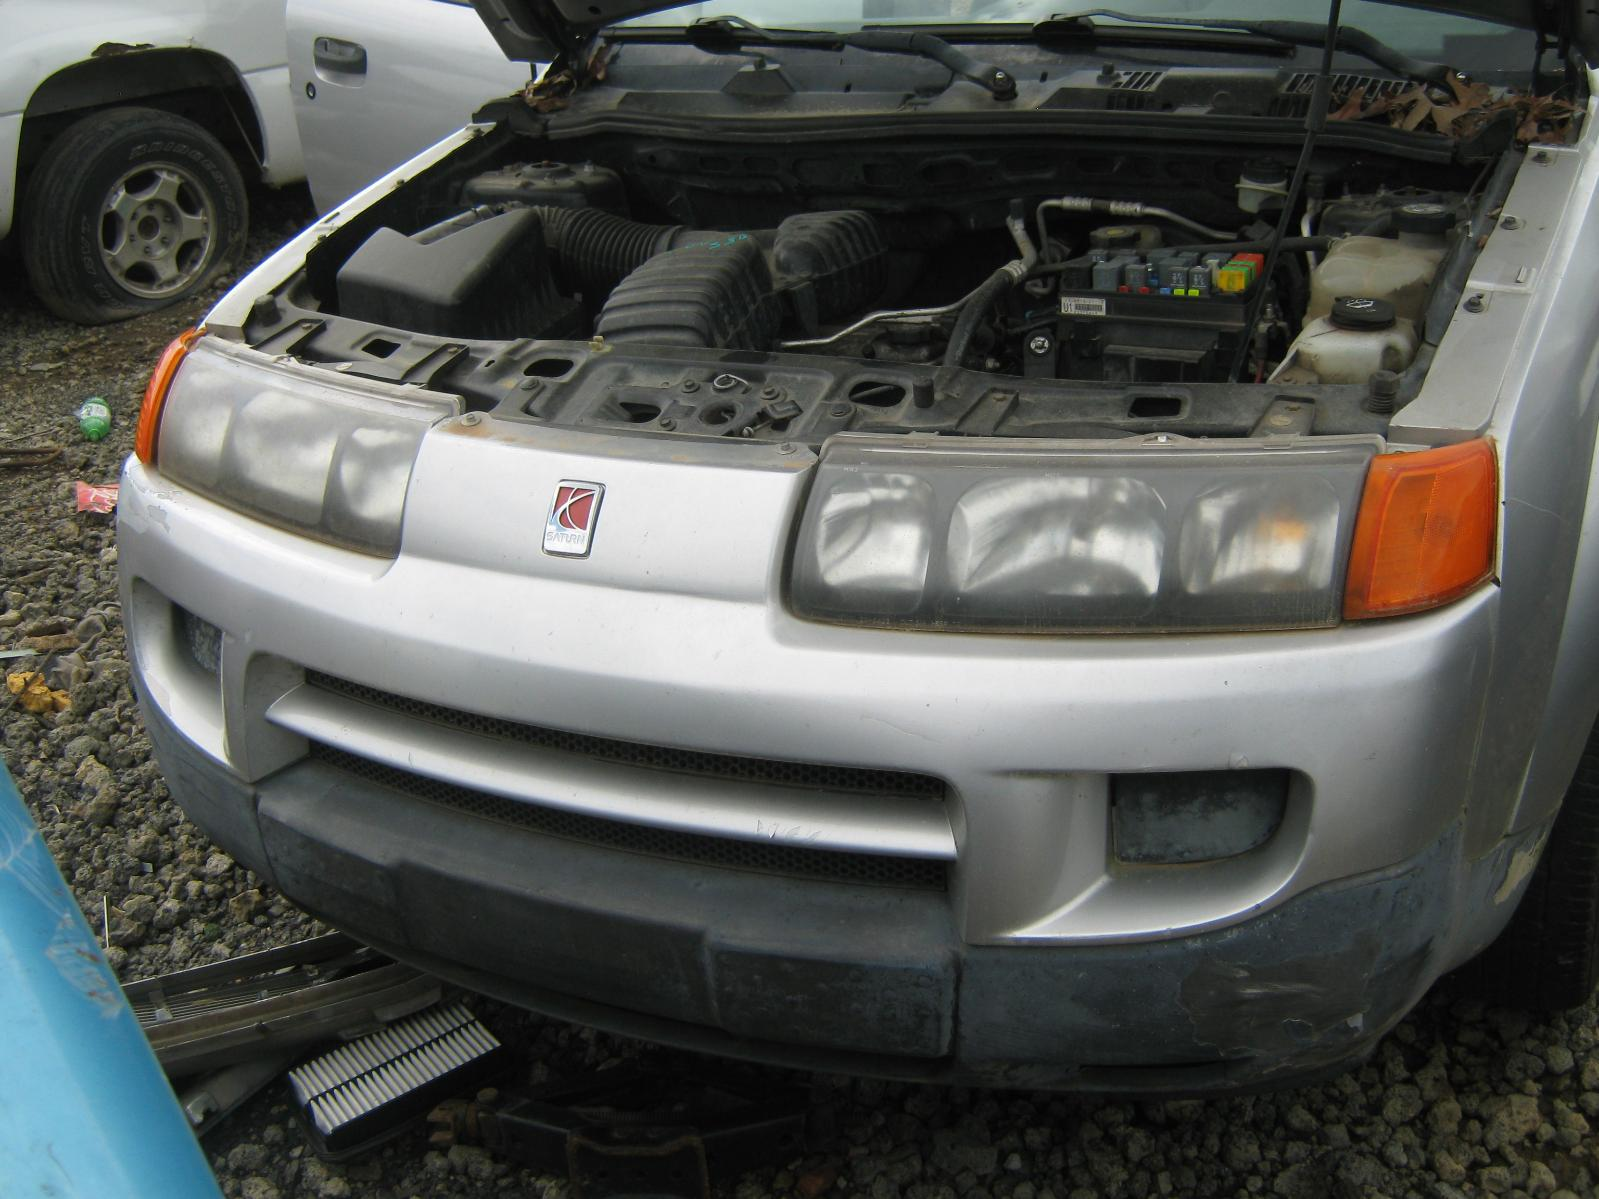 Saturn Vue Front End Assembly Used Auto Parts Transmission Swap Cd2f52ad C15b 4f91 9856 Aeaa58edaf13